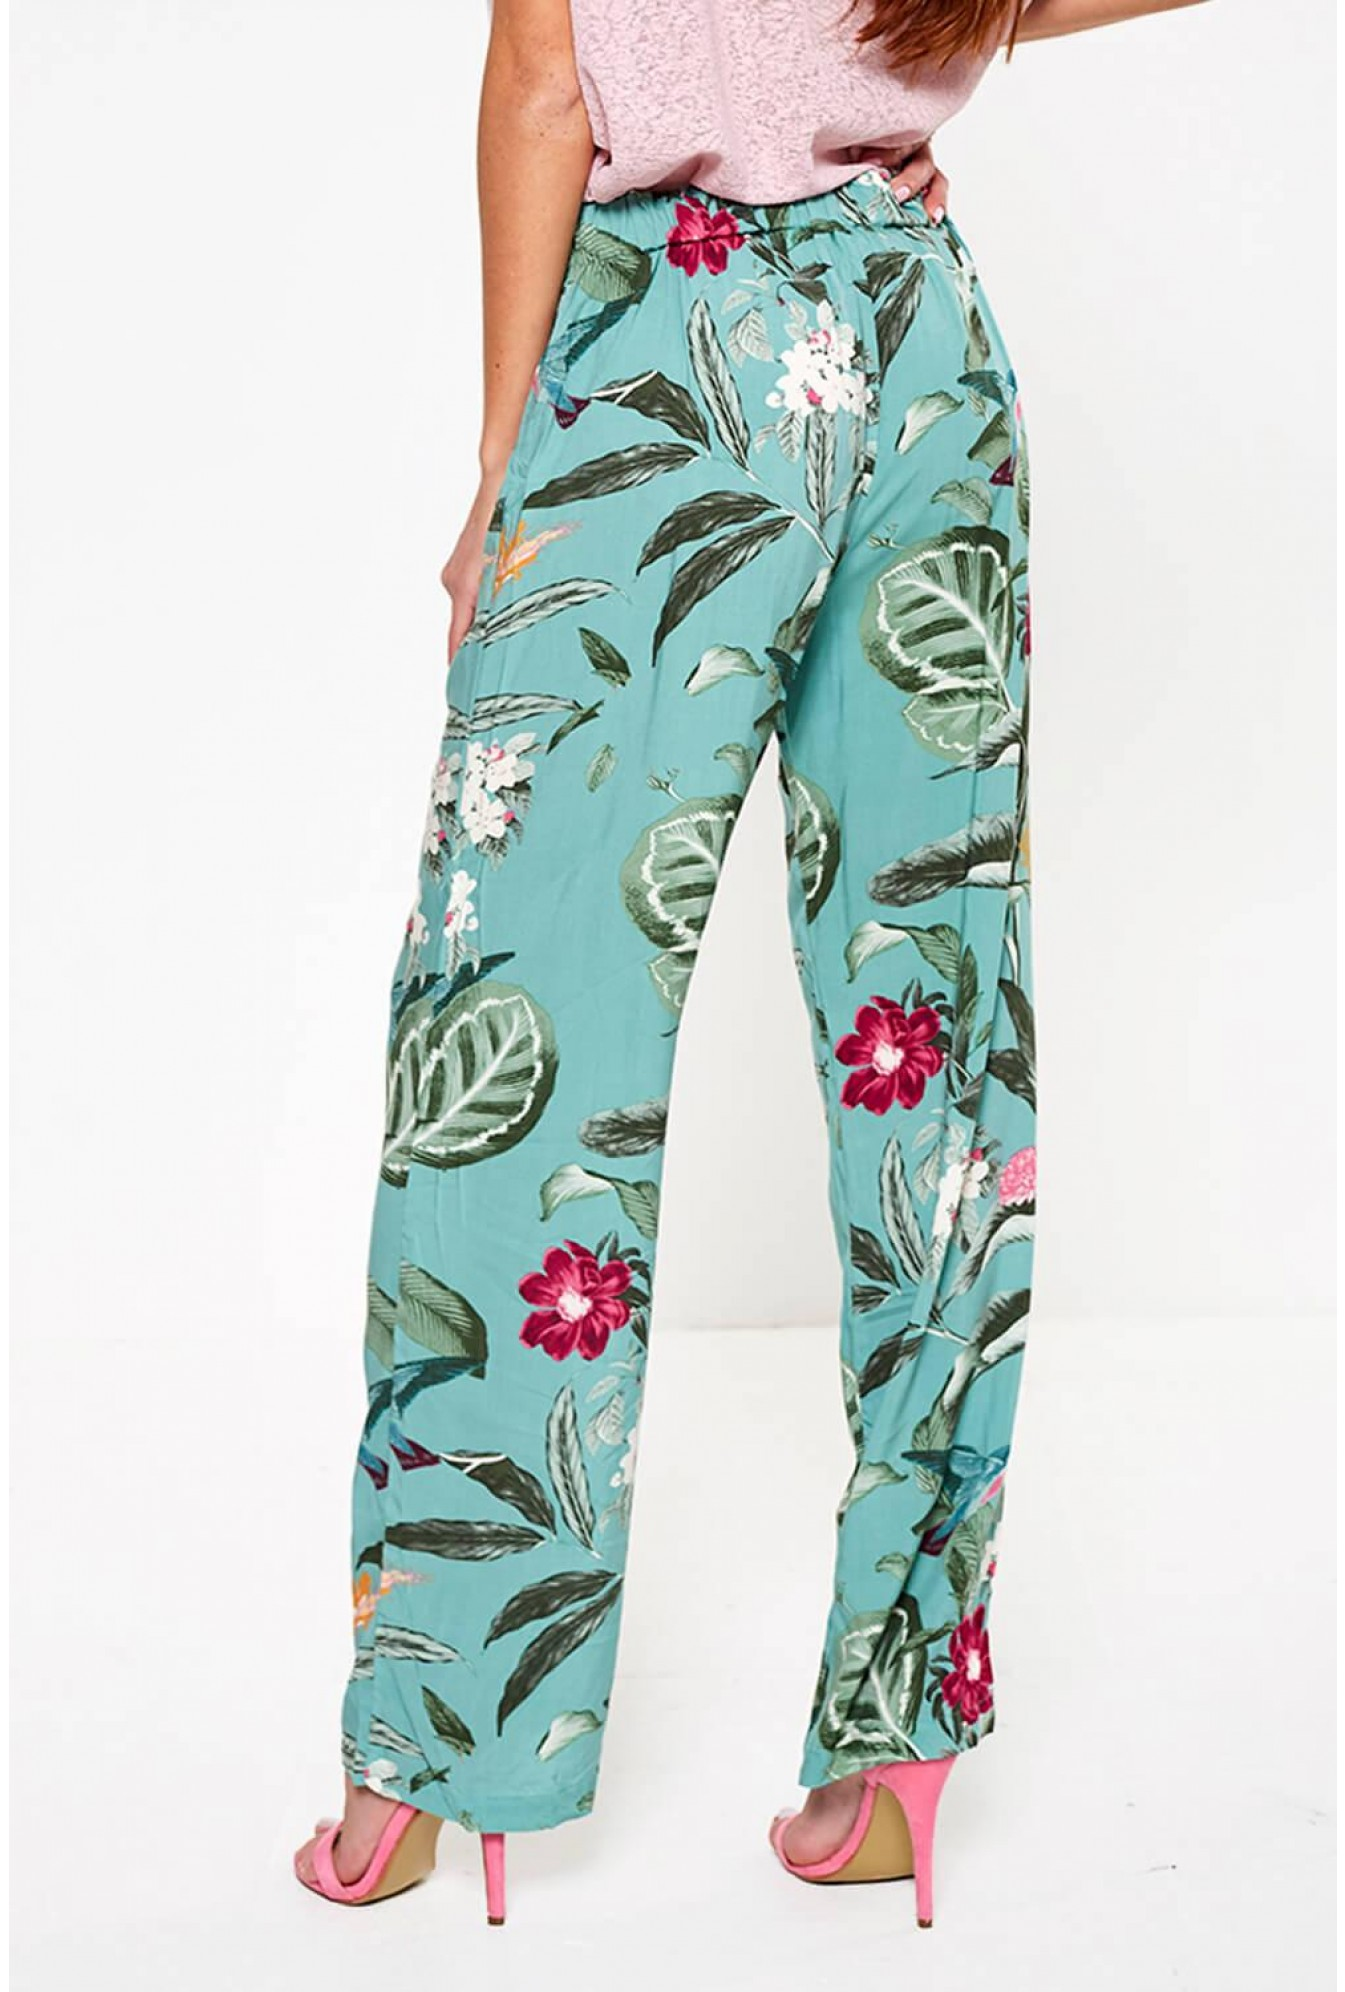 0b99395e1 Vero Moda Simply Floral Print Wide Leg Trousers in Mint | iCLOTHING